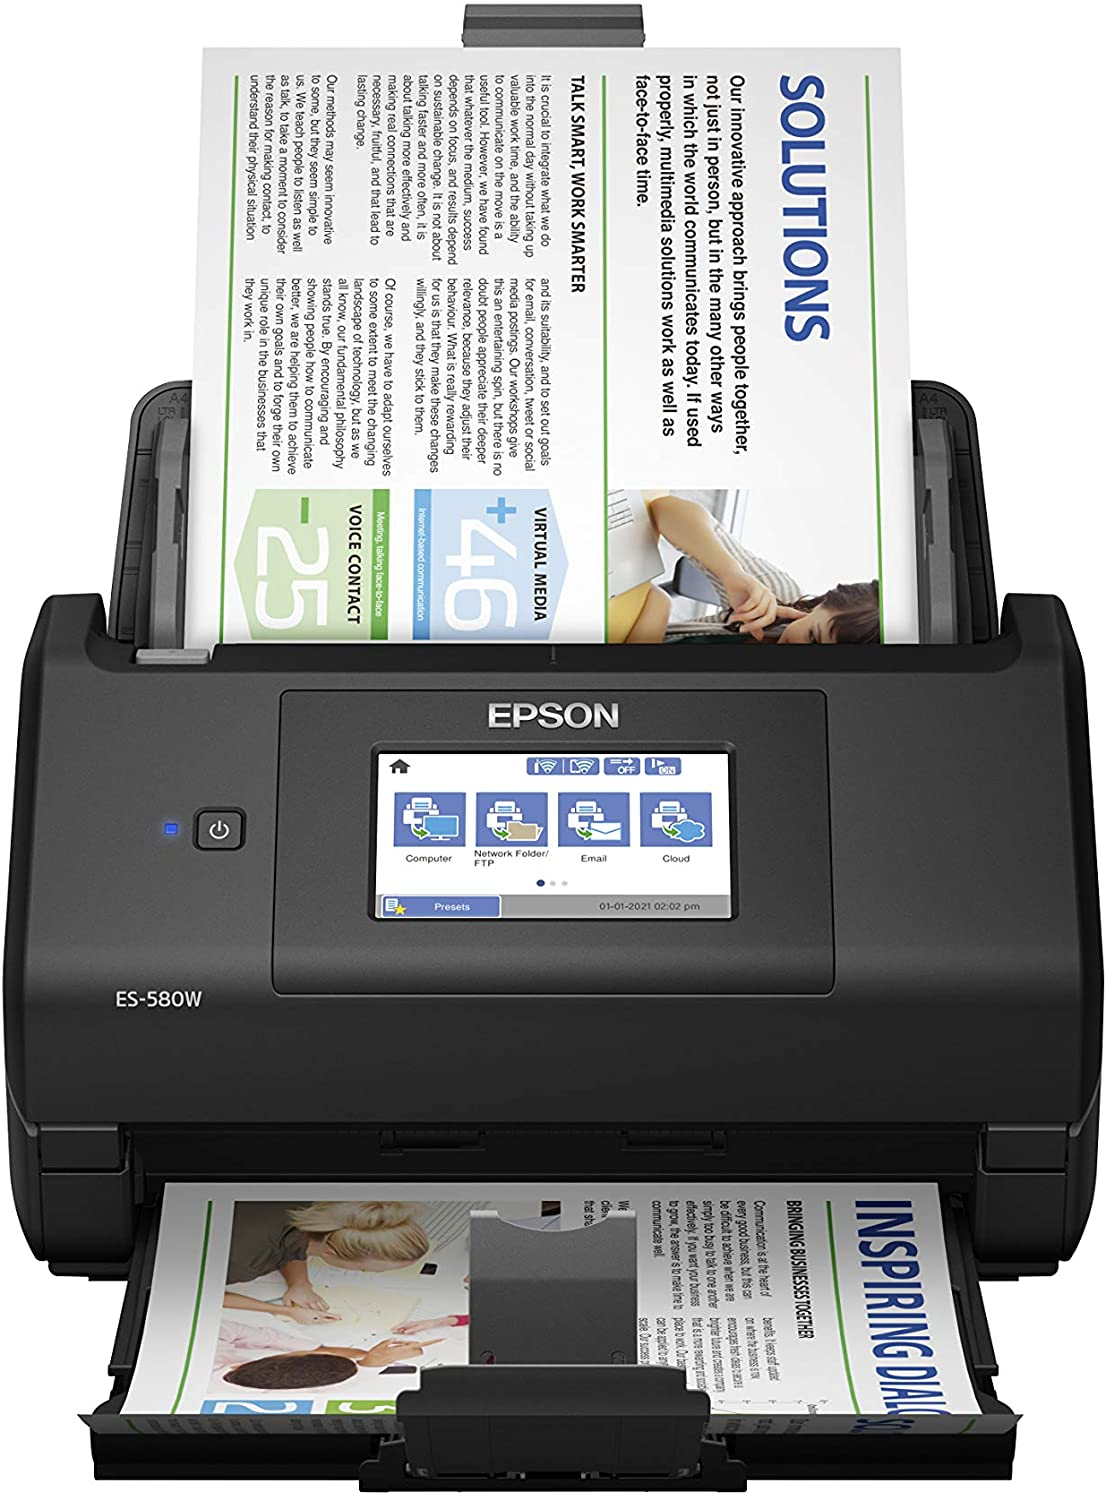 Epson Workforce ES-580W Wireless Color Duplex Desktop Document Scanner for PC and Mac with 100-sheet Auto Document Feeder (ADF) and Intuitive 4.3